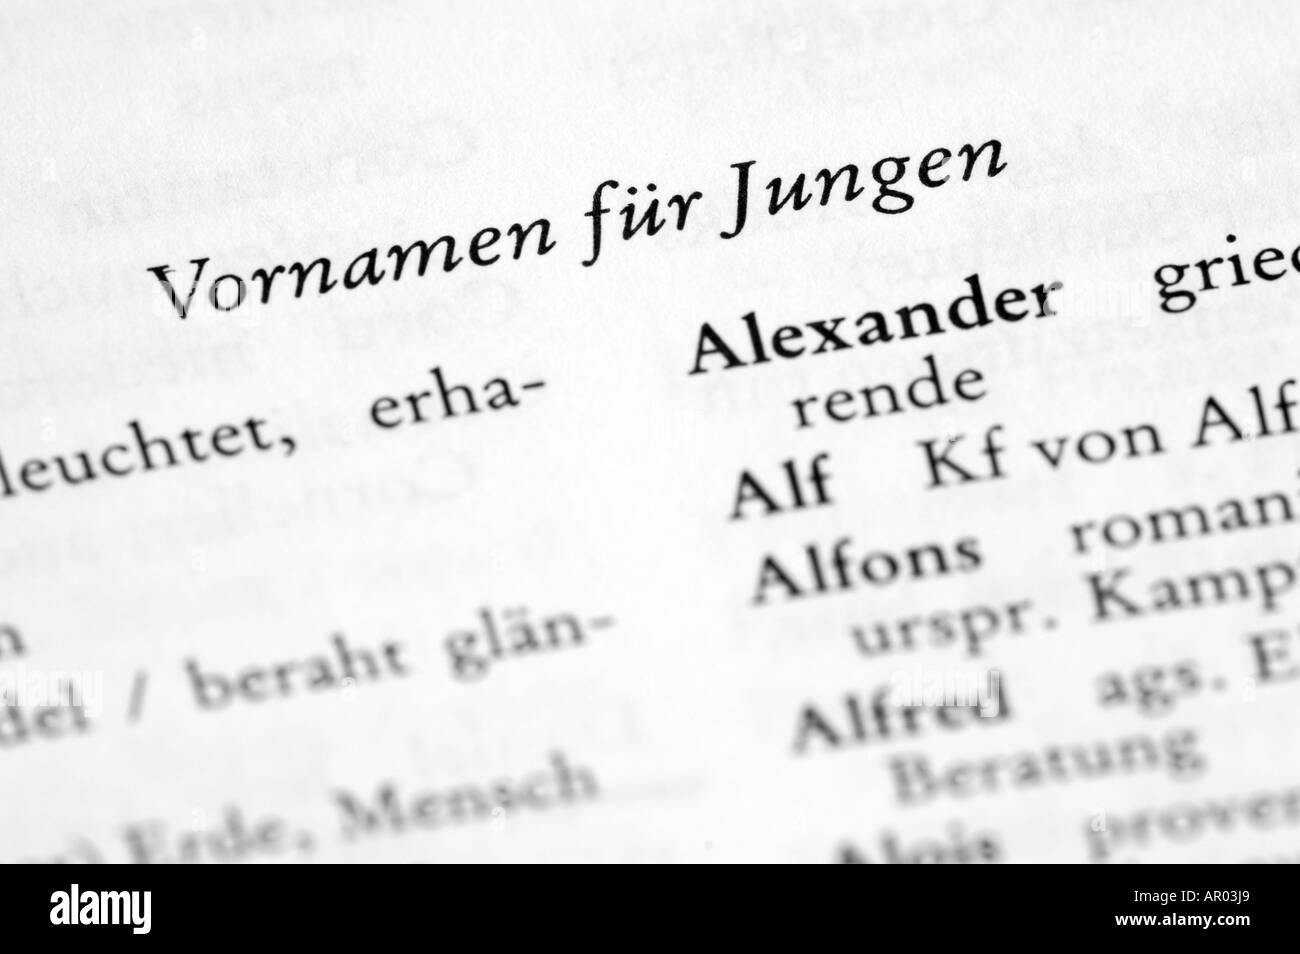 German first names Stock Photo: 9082472 - Alamy